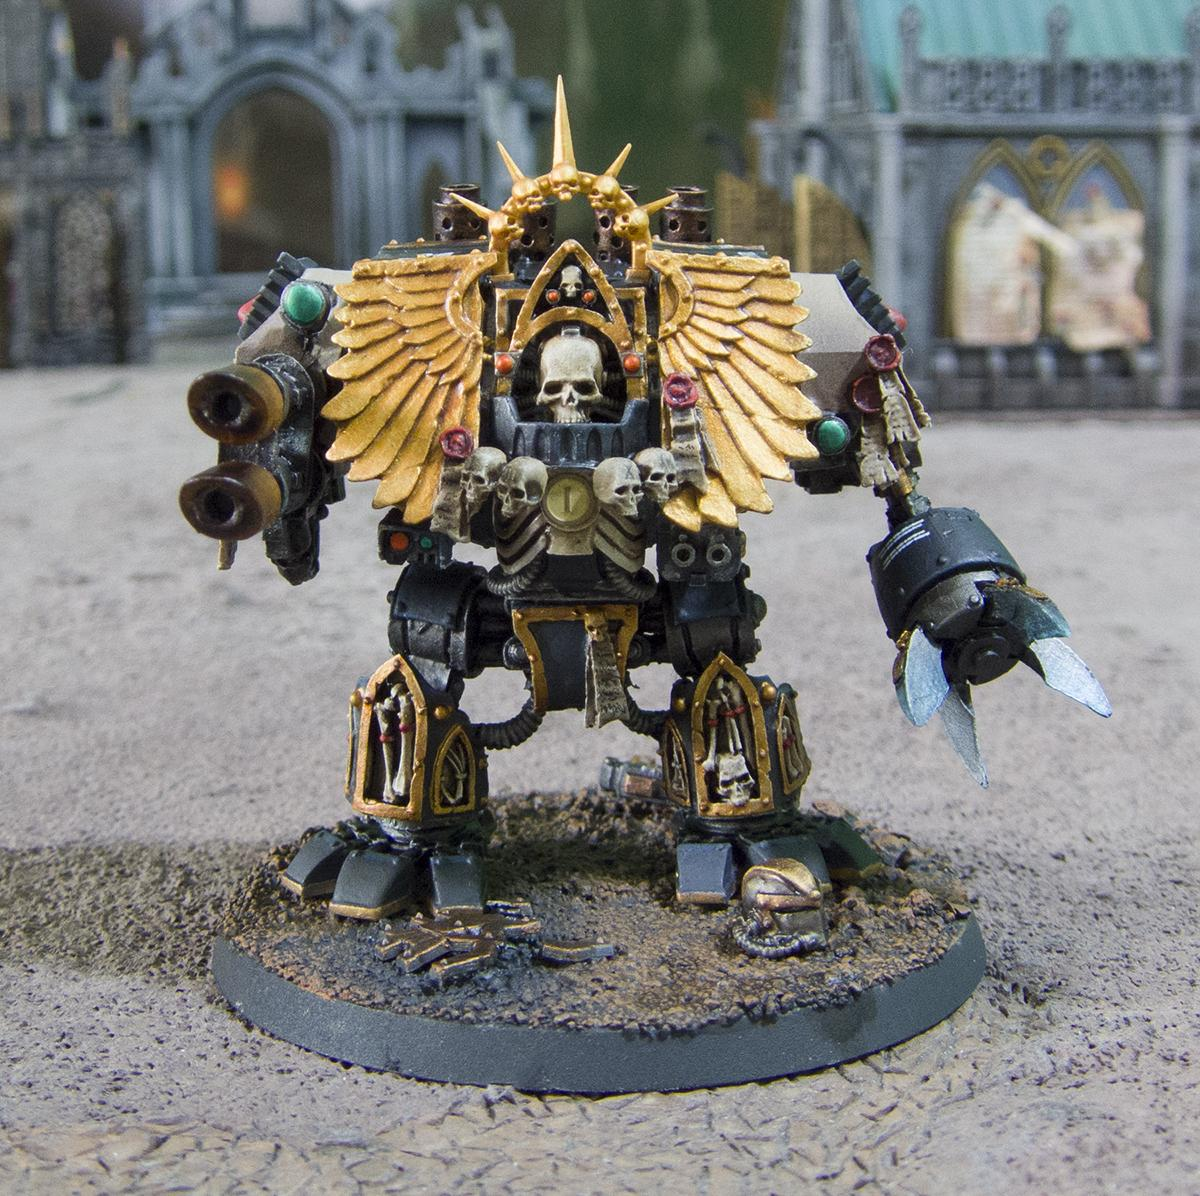 Chaplain, Dreadnought, Forge World, Out Of Production, Space Marines, Warhammer 40,000